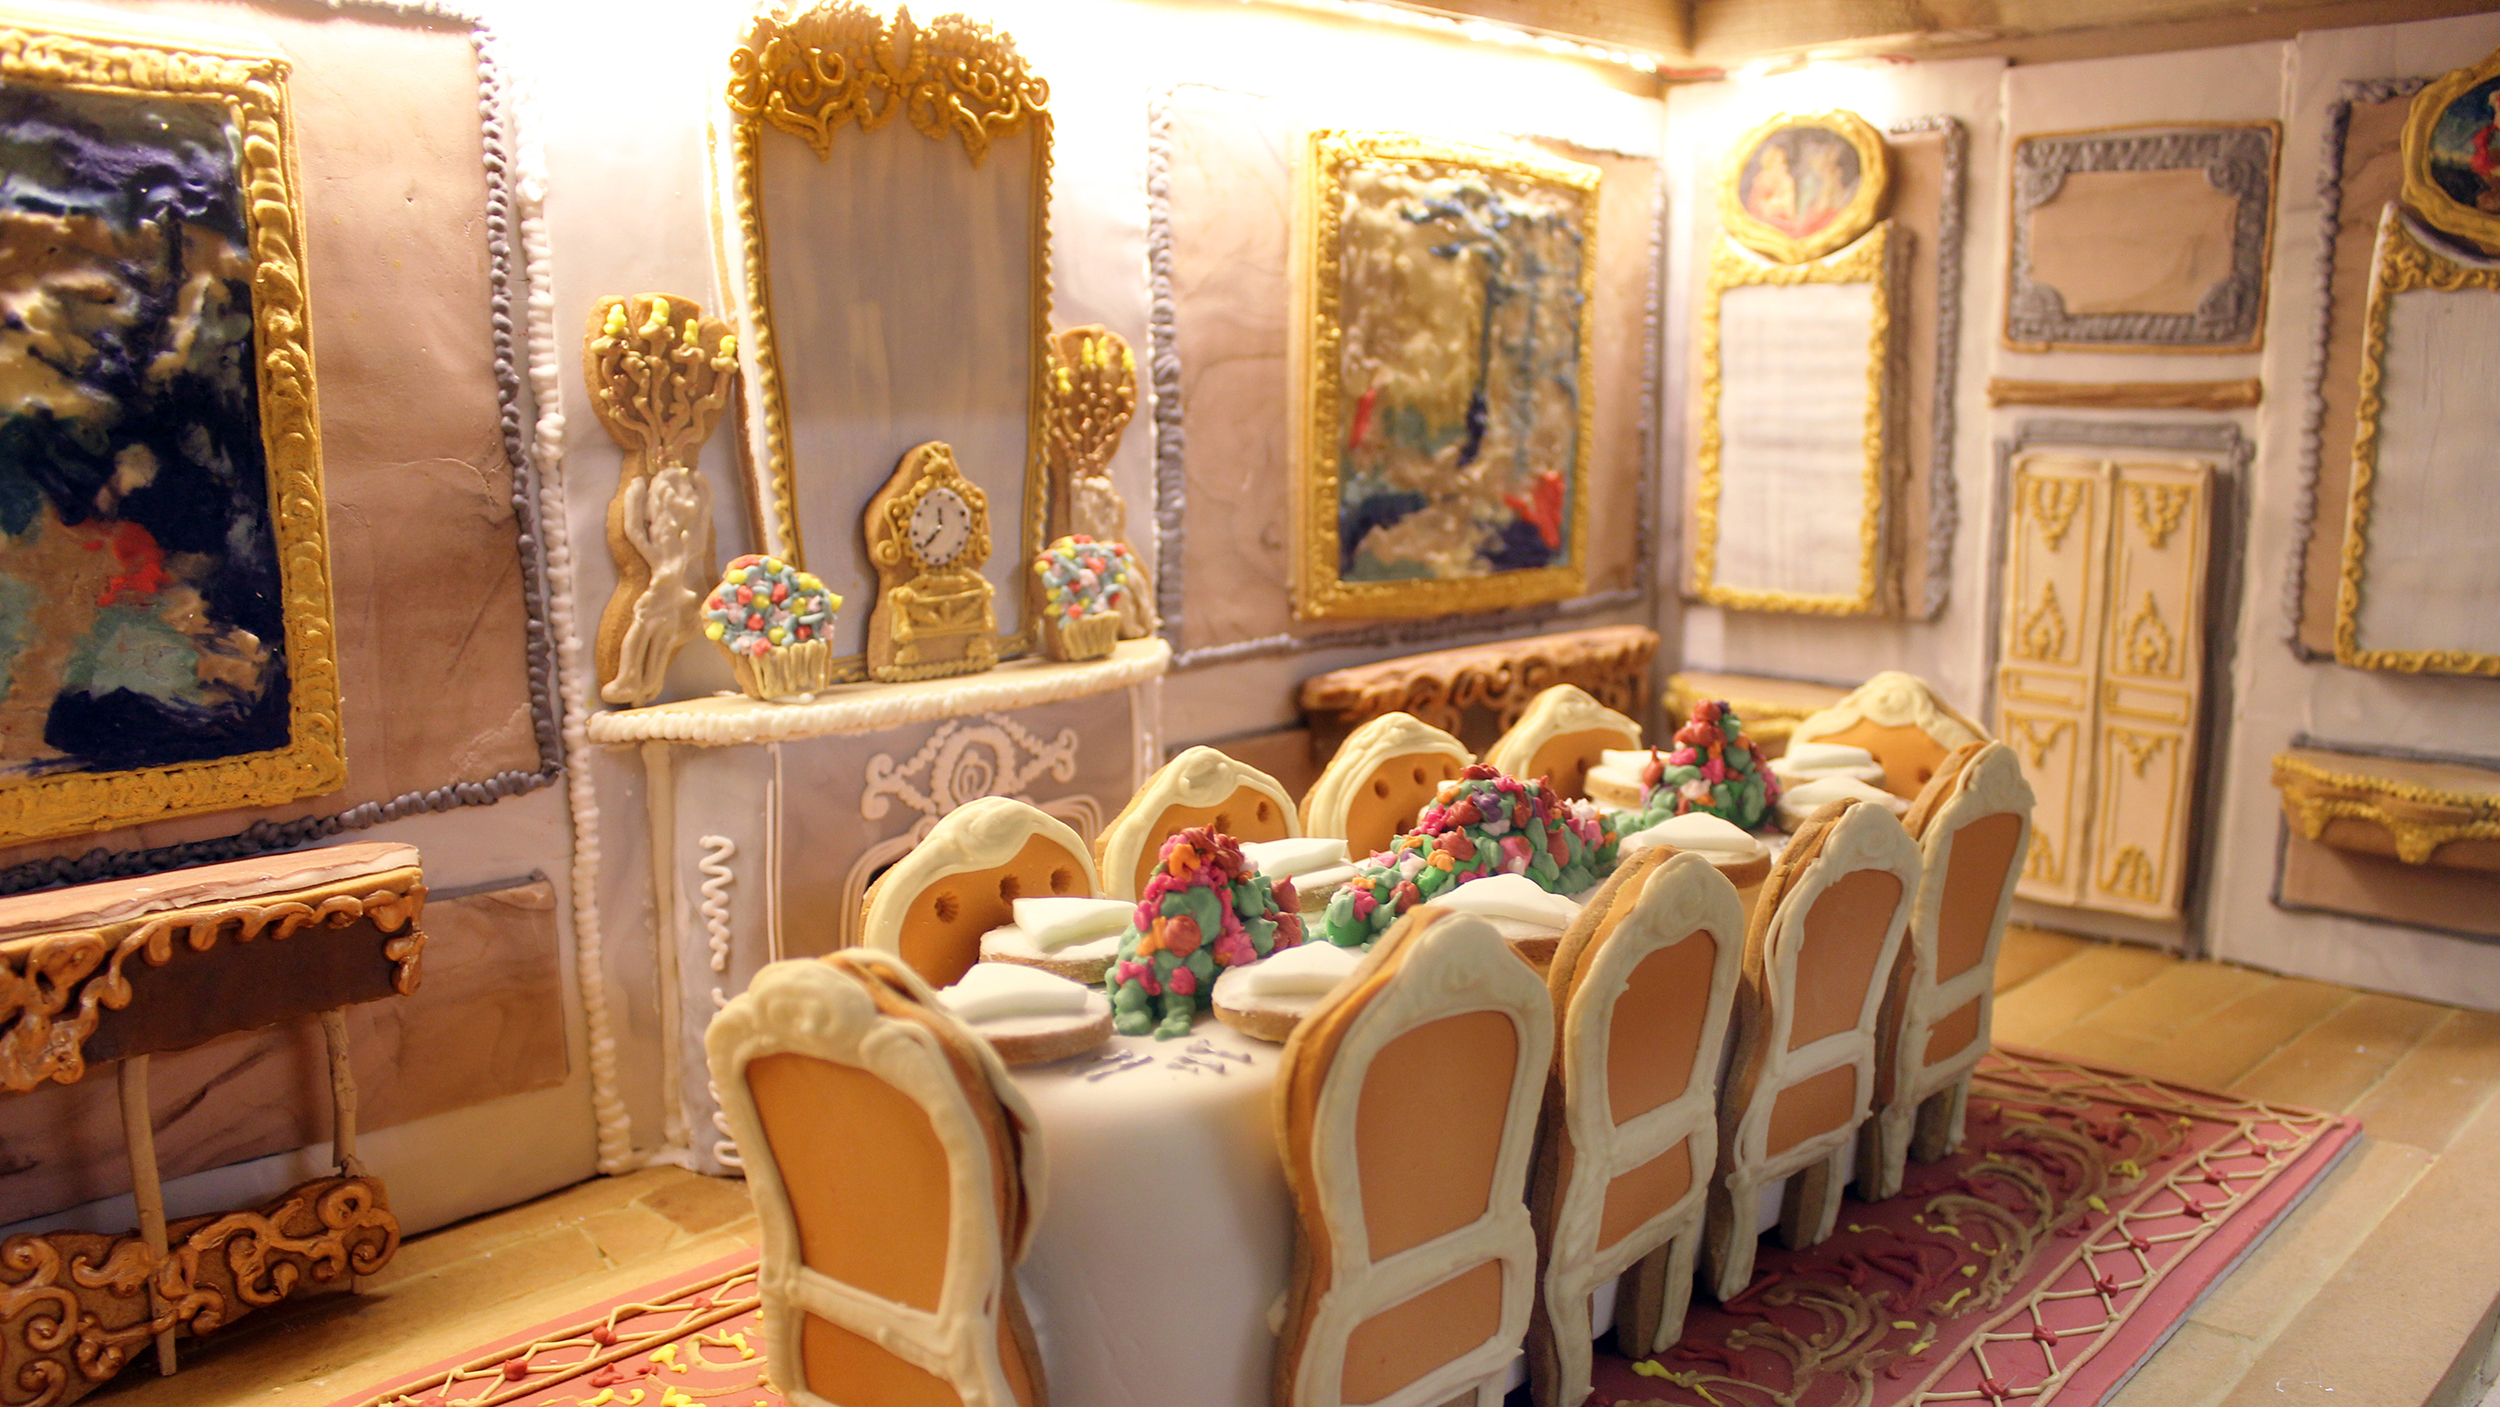 Gingerbread House By Biscuiteers Took 500 Hours To Make